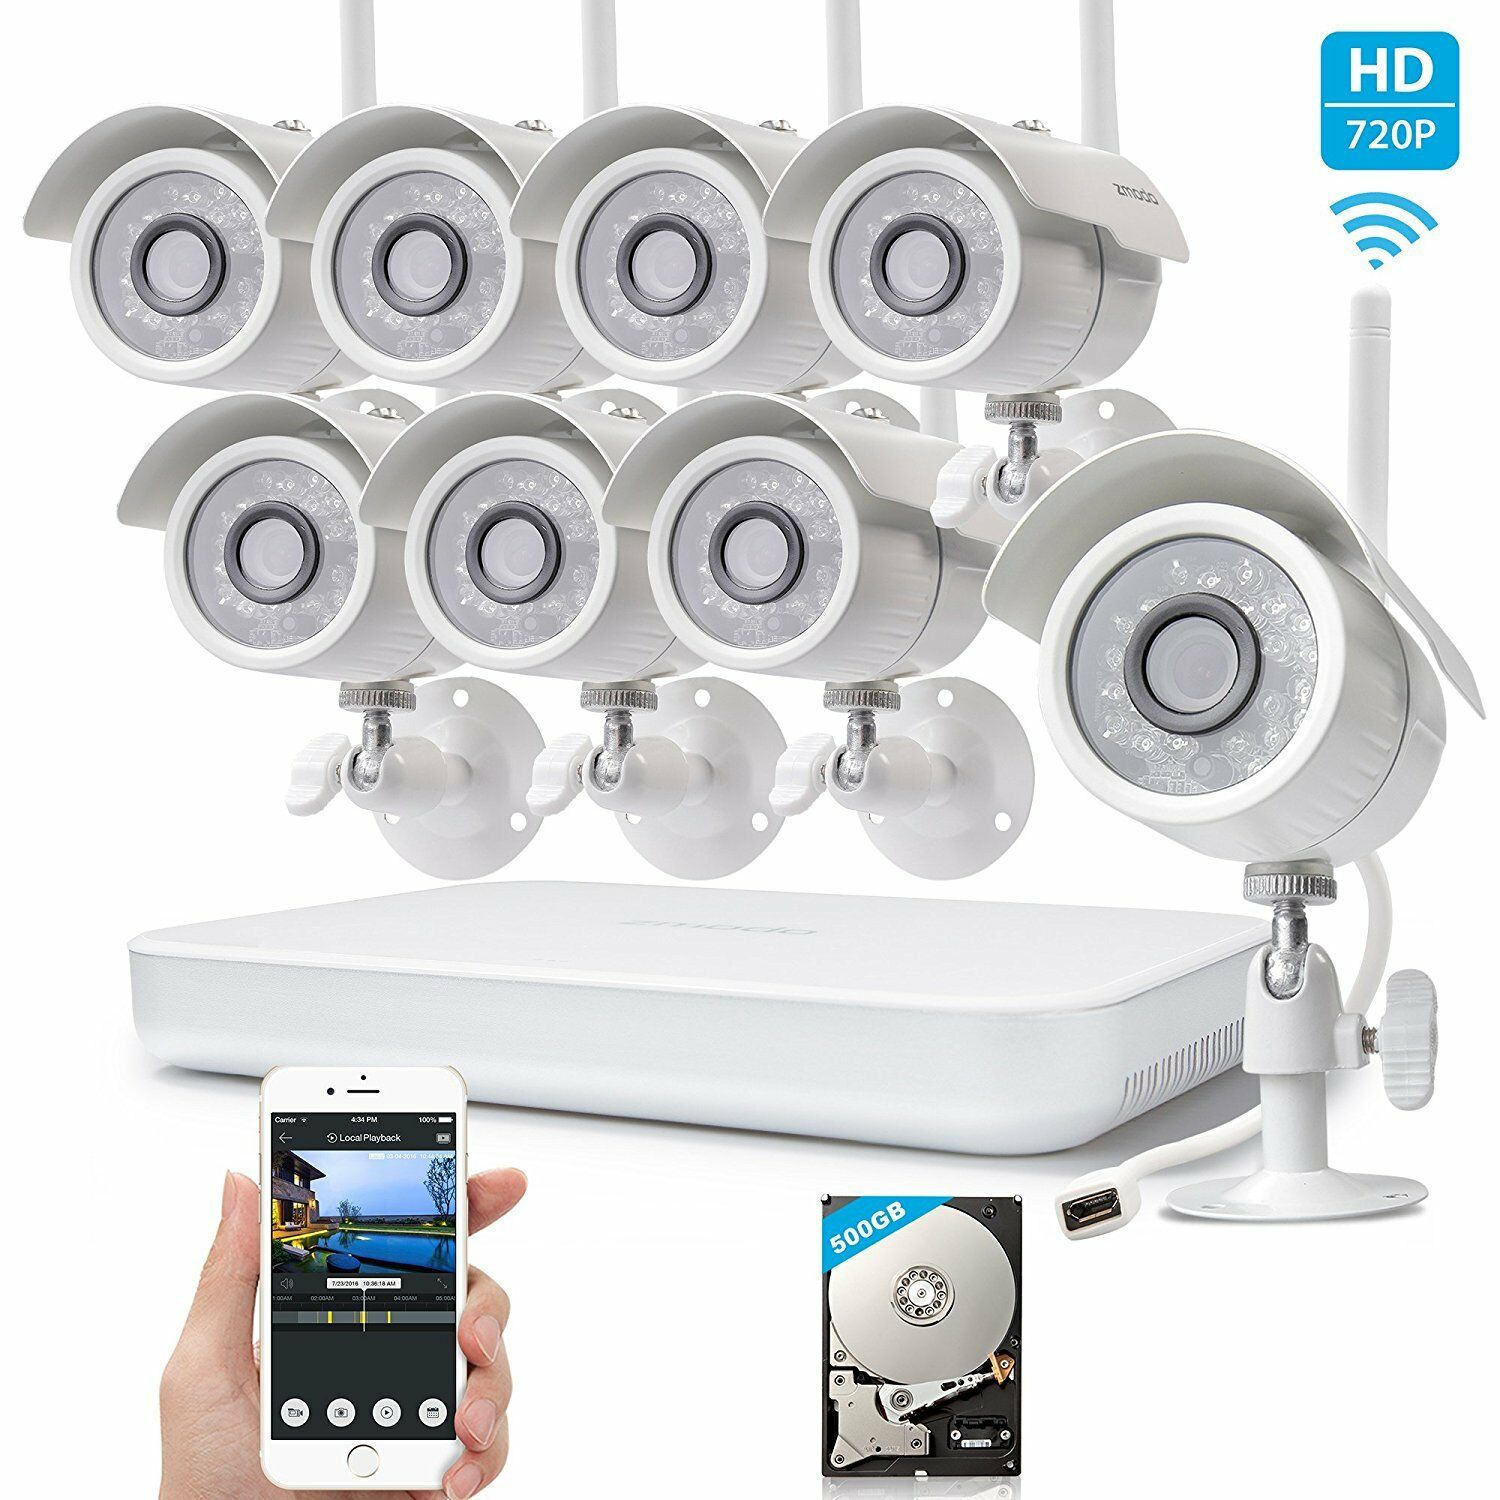 Zmodo 1080p HDMI 8CH NVR System With (8) 1.0 Megapixel Wireless Cameras 500GB